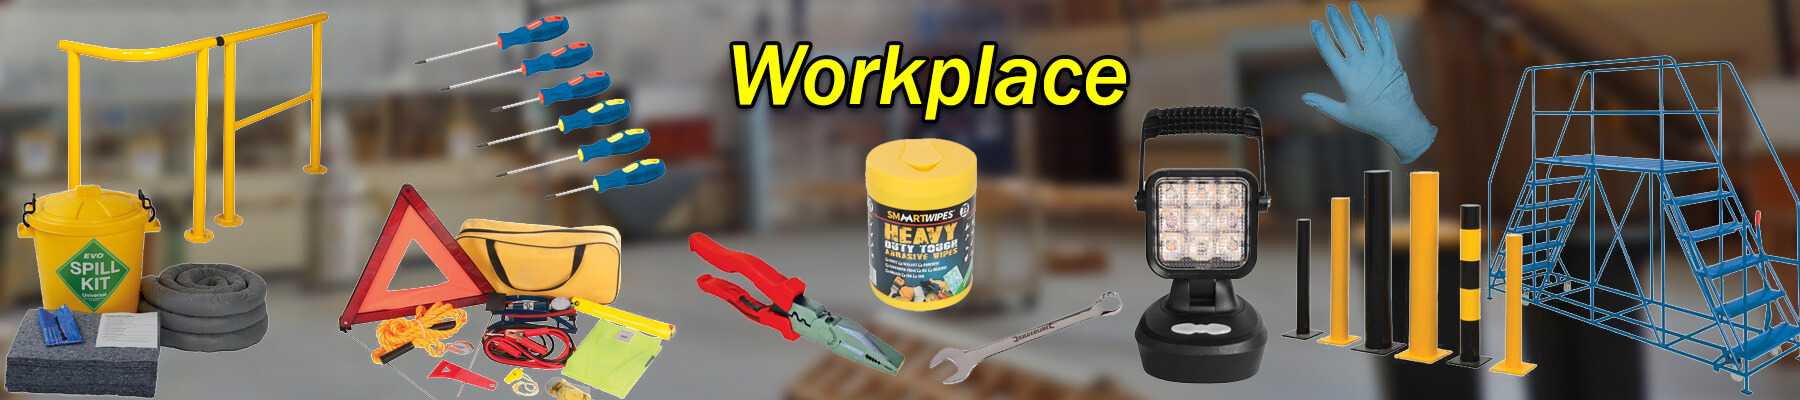 Workplace Products